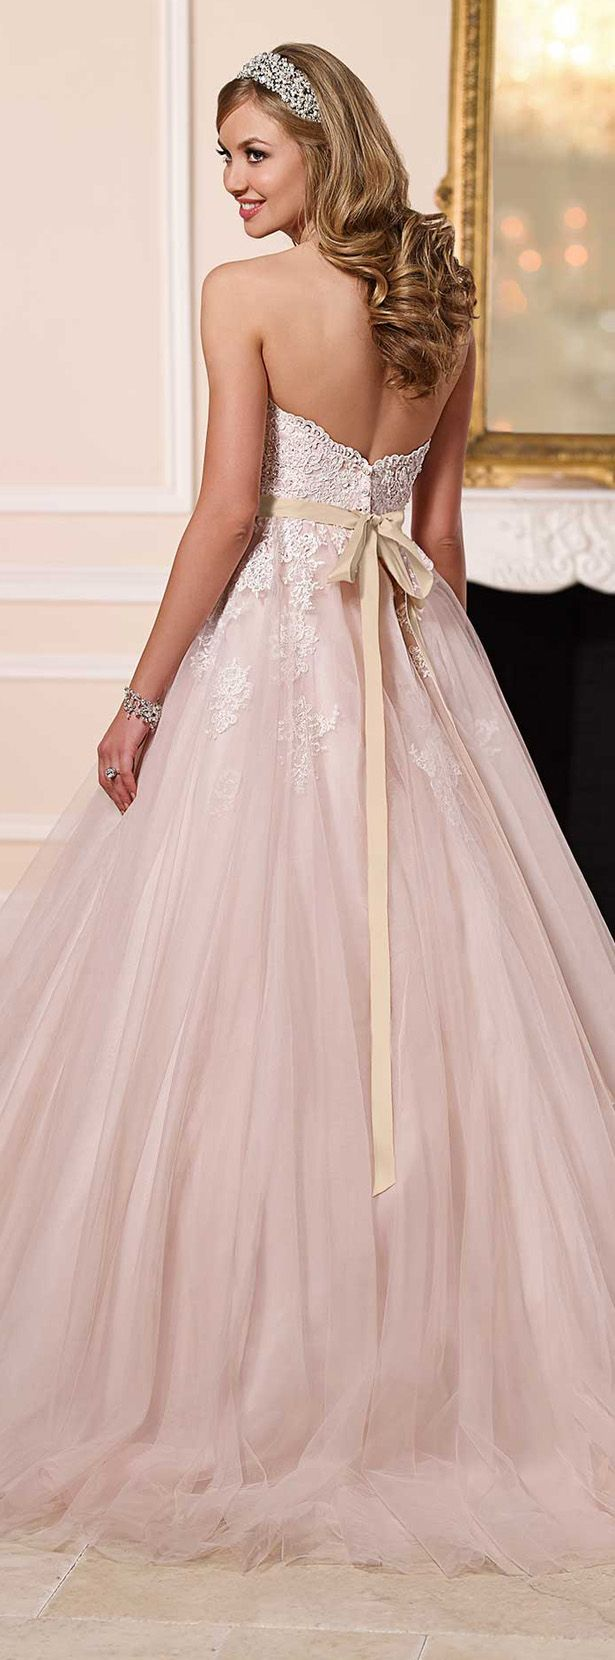 Top 10 wedding ideas and color combos from 2016 wedding dresses stella york spring 2016 wedding dresses collection httptulleandchantilly ombrellifo Images